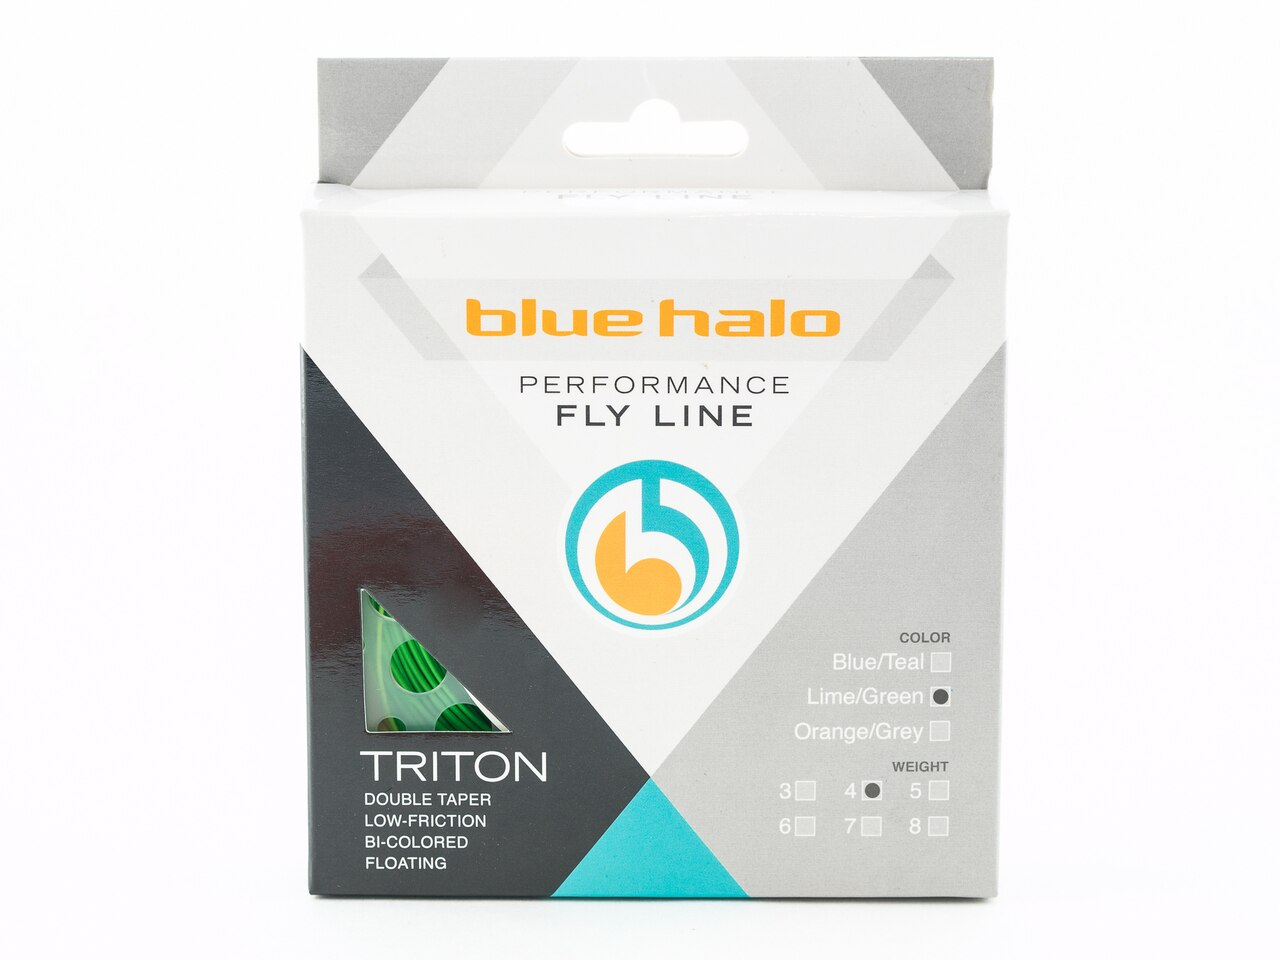 Blue Halo TRITON DT Fly Line - 6WT